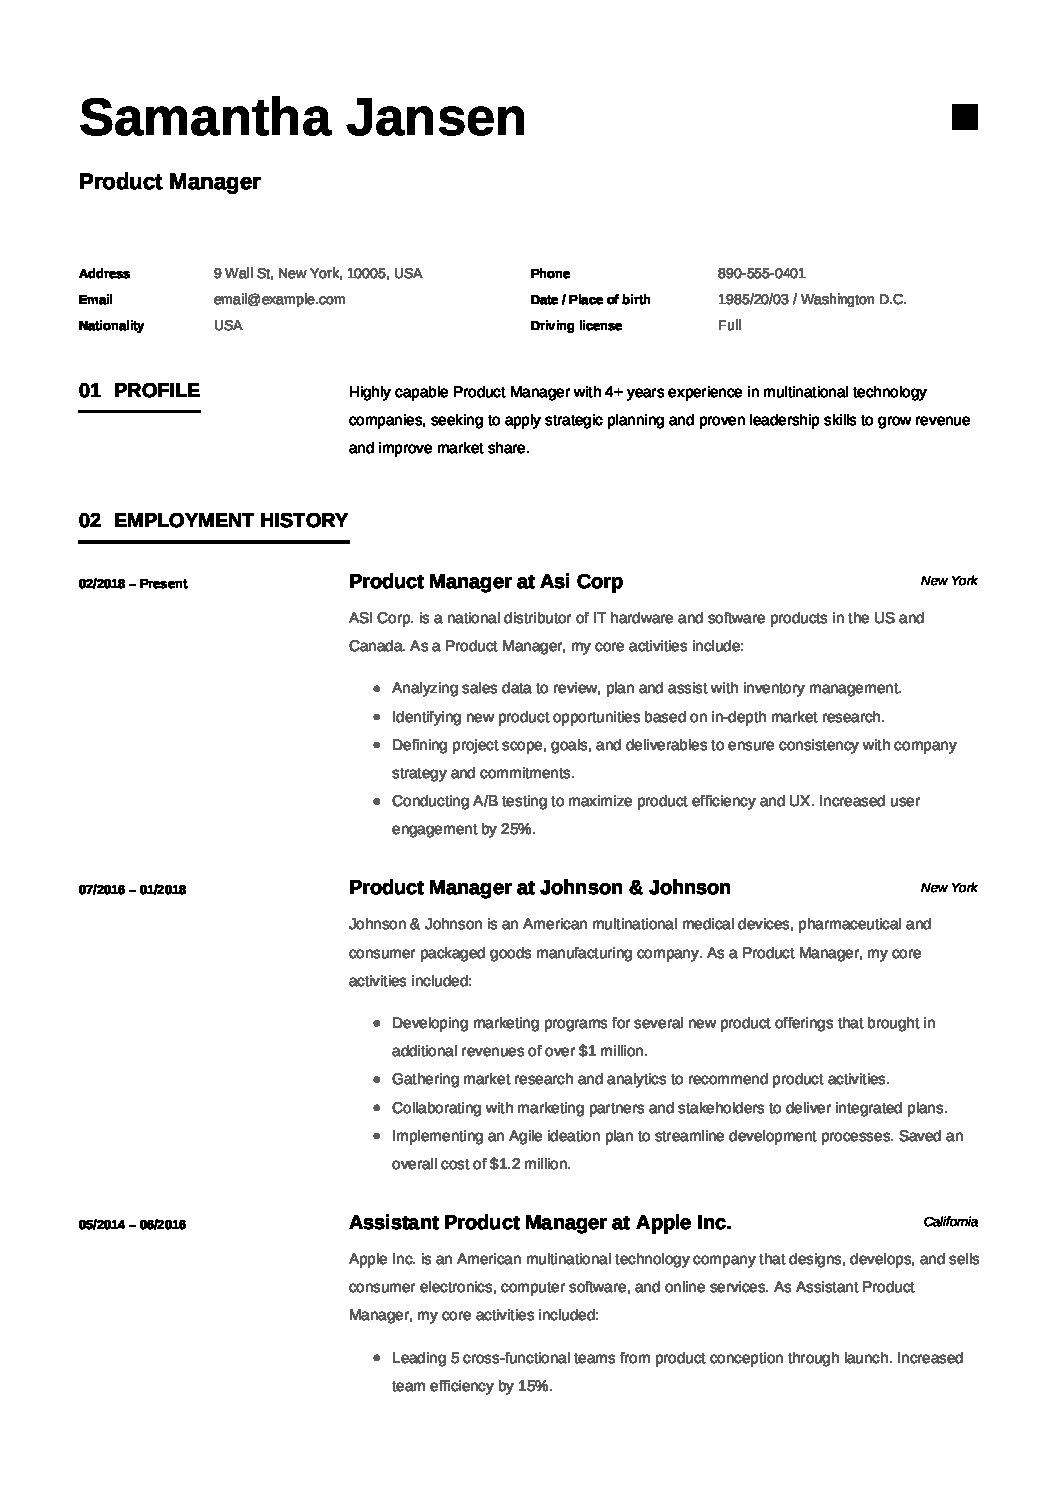 Product Manager Resume Resume 12 Samples Pdf 2019